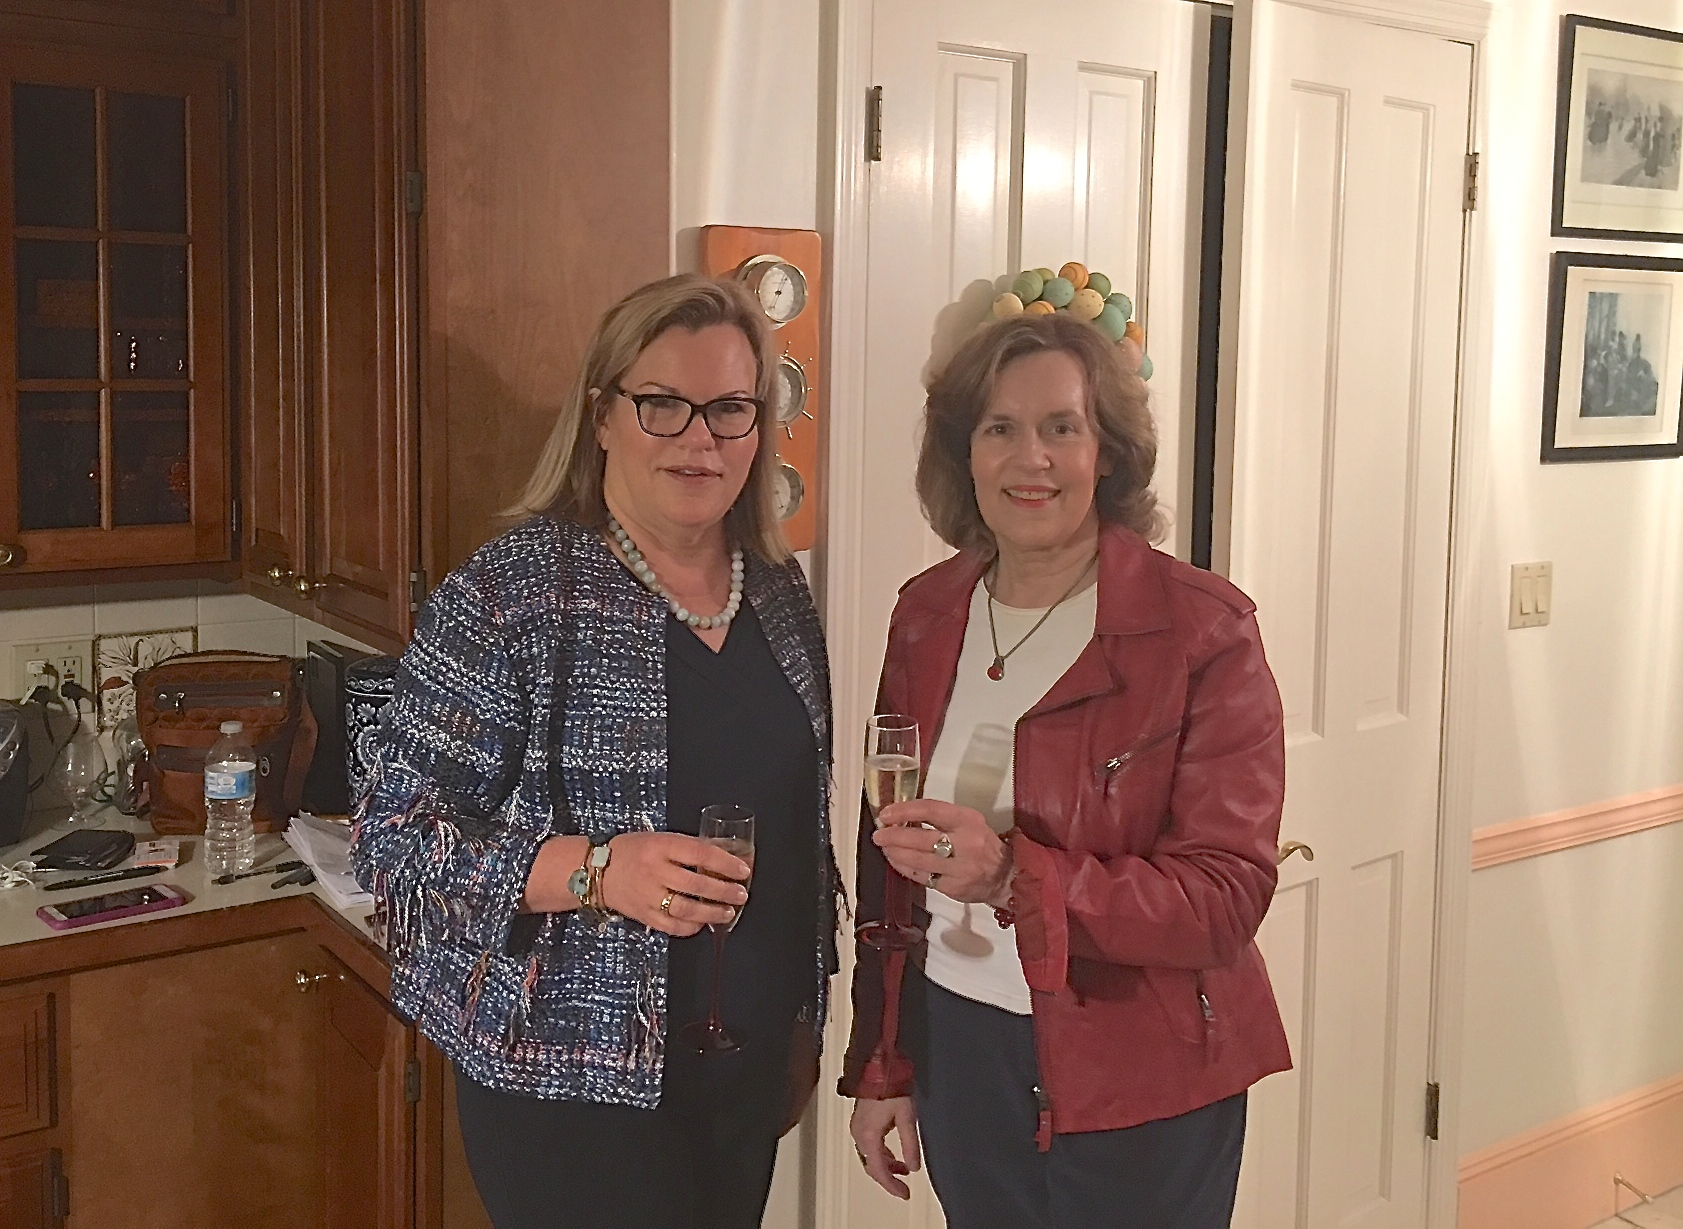 Celeste & Lorraine, Mother's Day, 2018